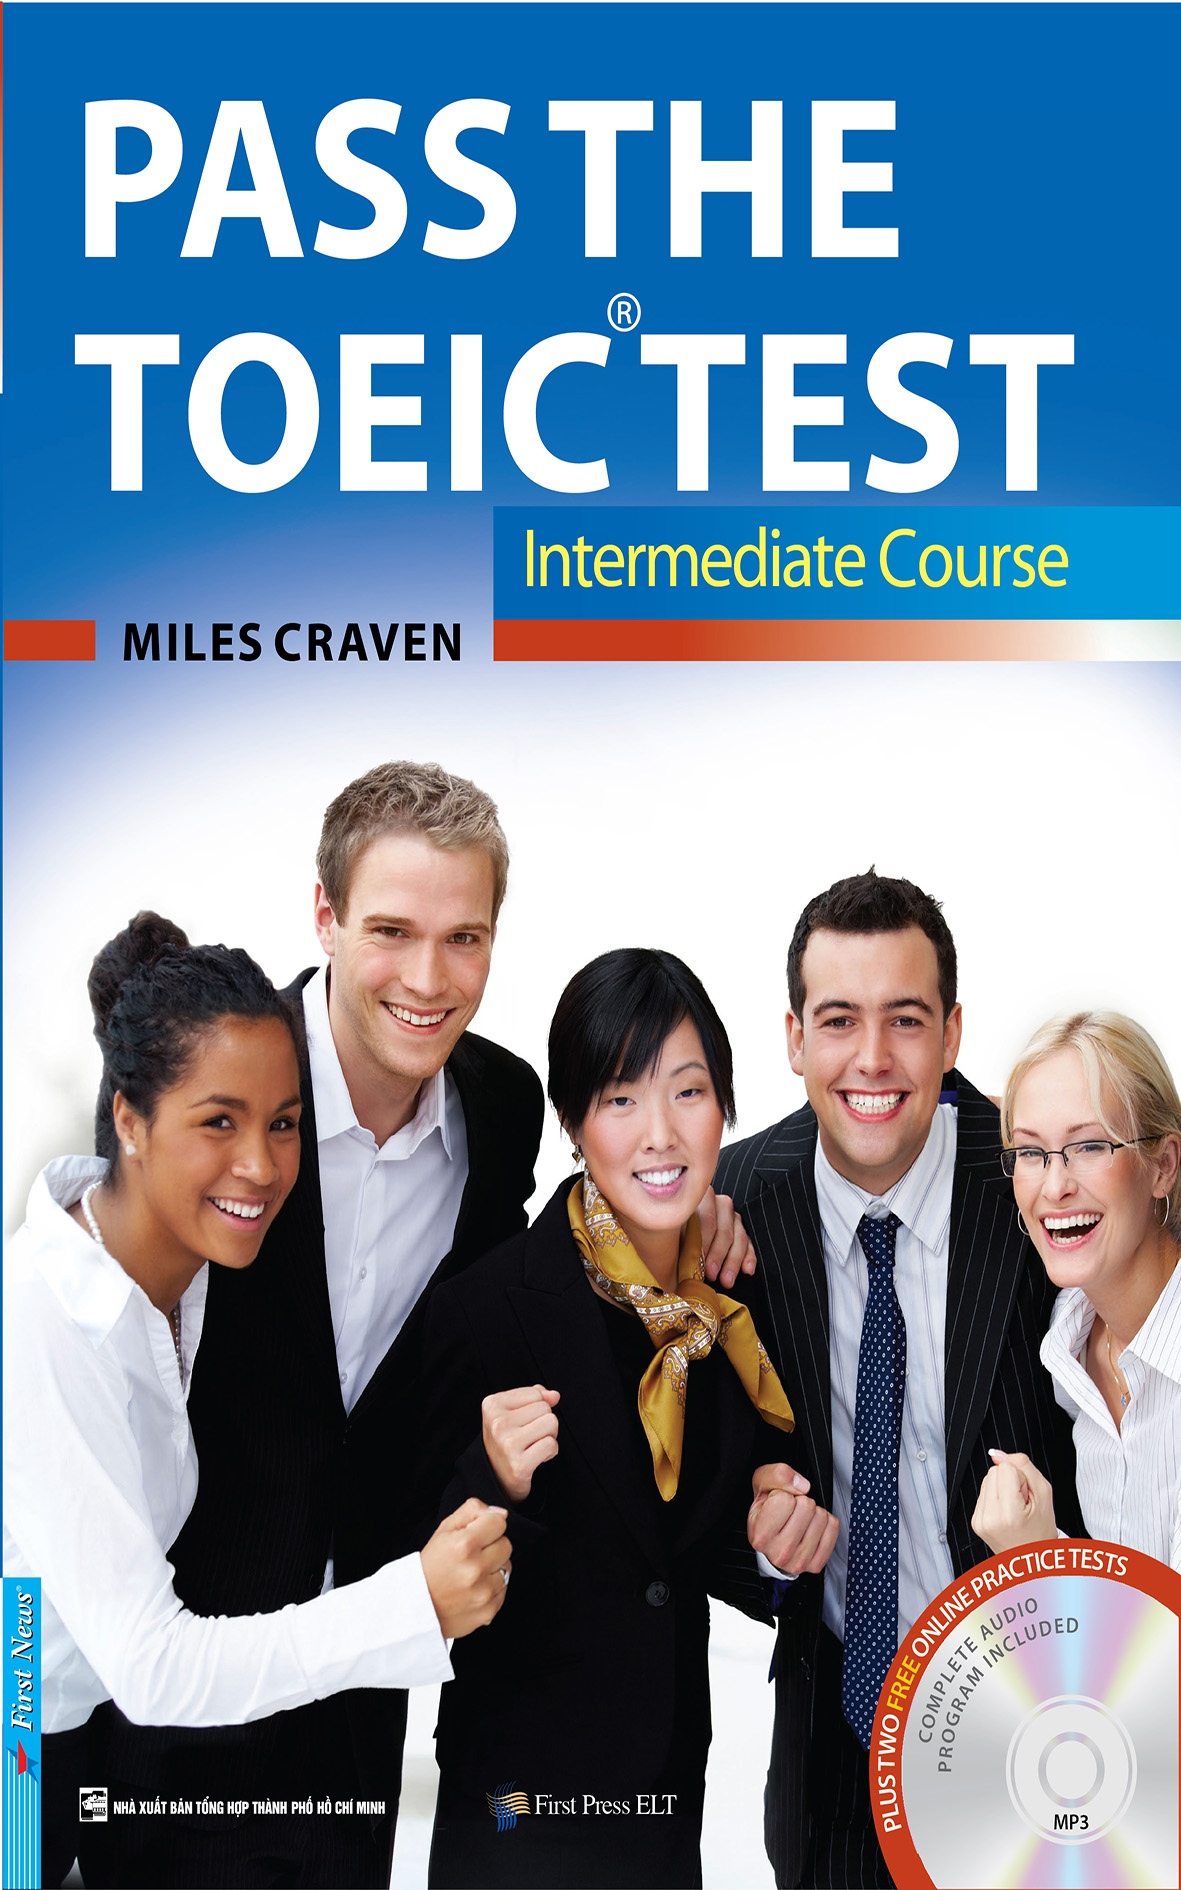 PASS THE TOEIC TEST INTERMEDIATE COURSE